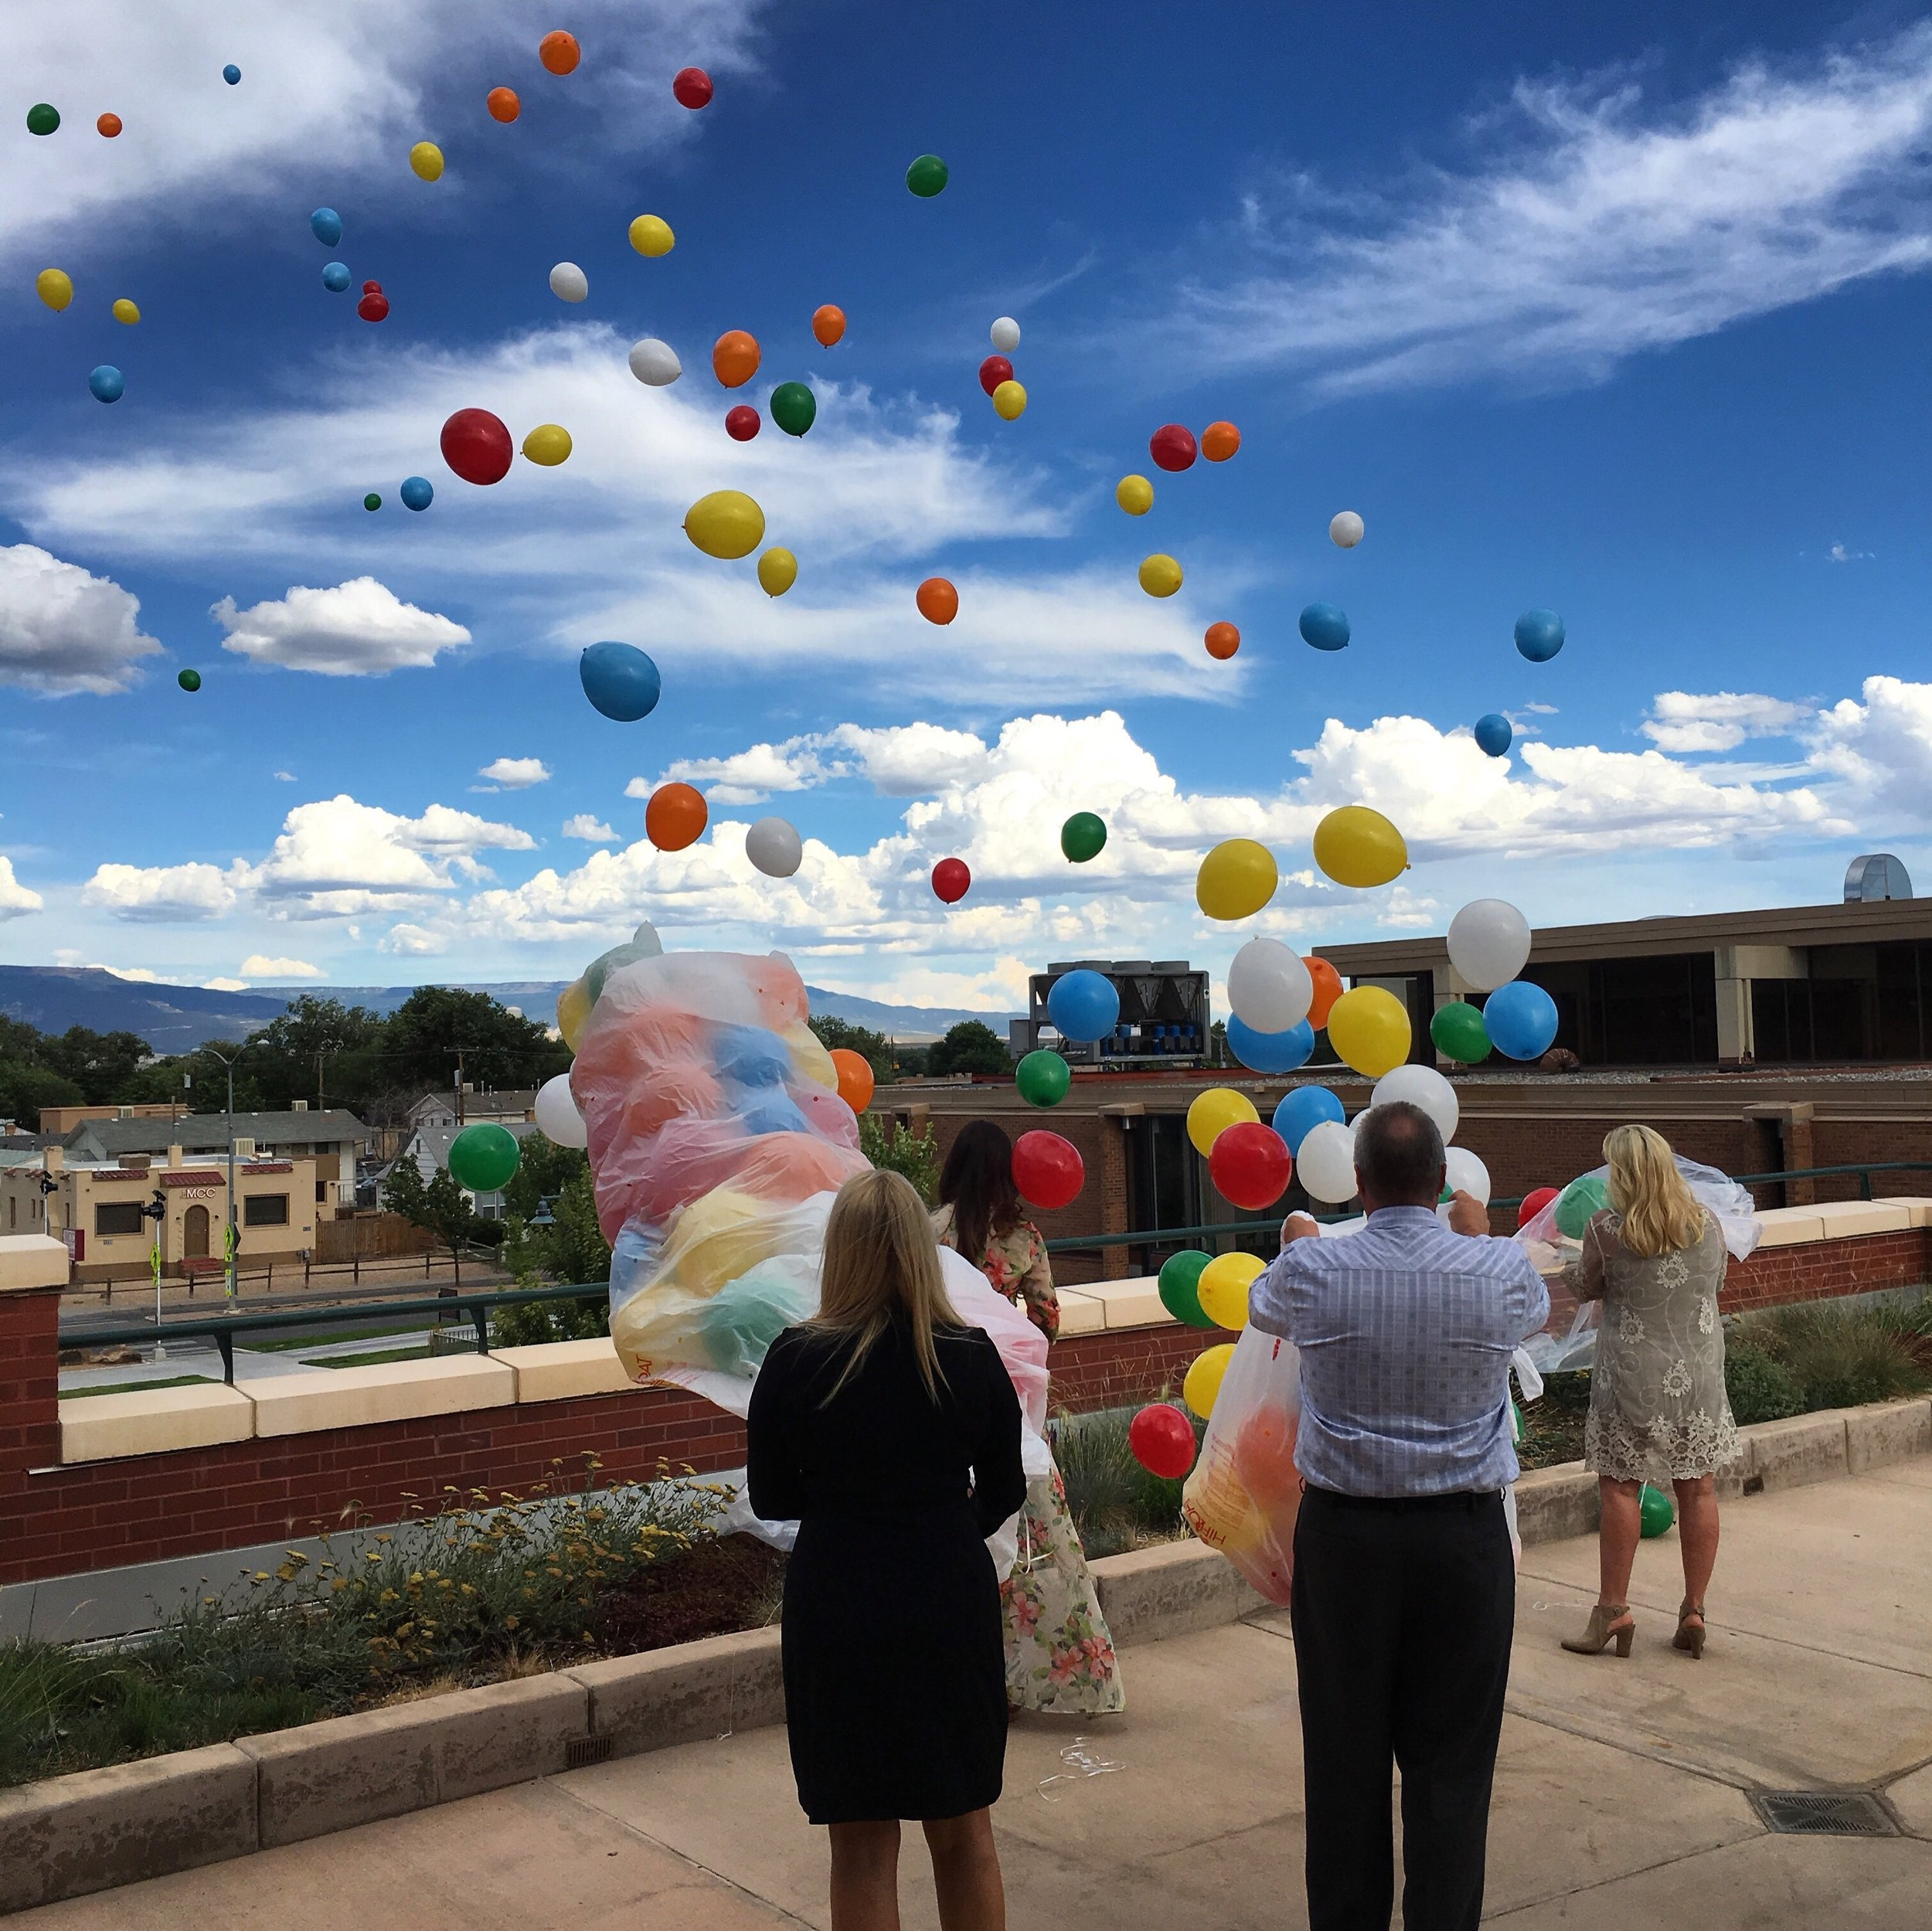 Balloon release at Jordan Jones Celebration of Life on July 8th, 2016, in Grand Junction, CO.